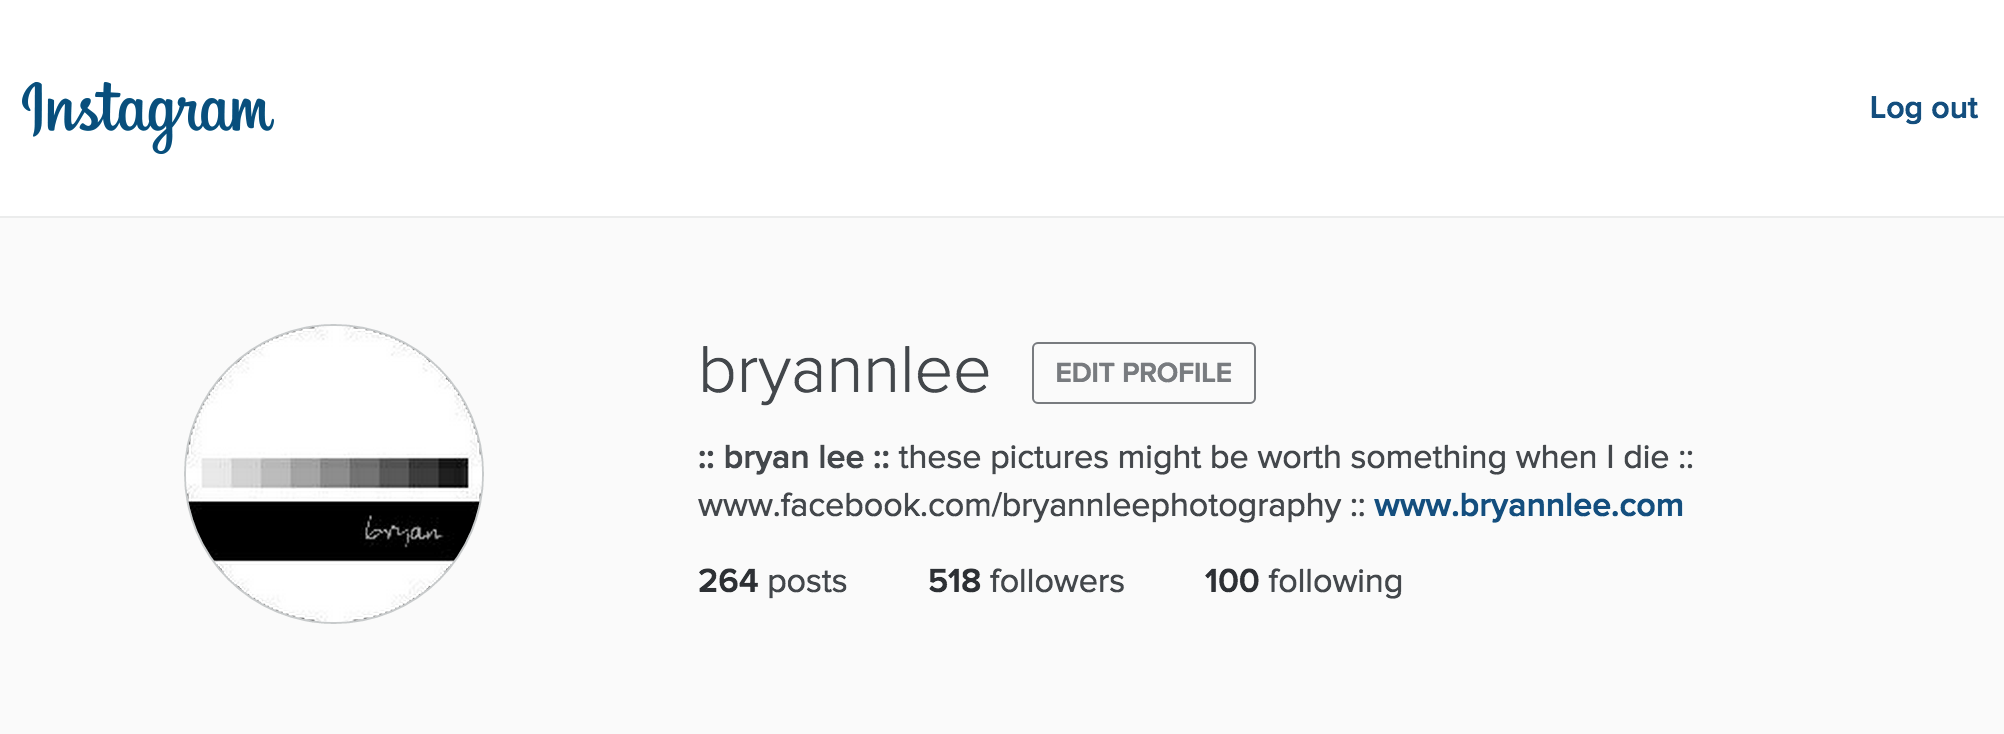 100 Following :: Purge done!